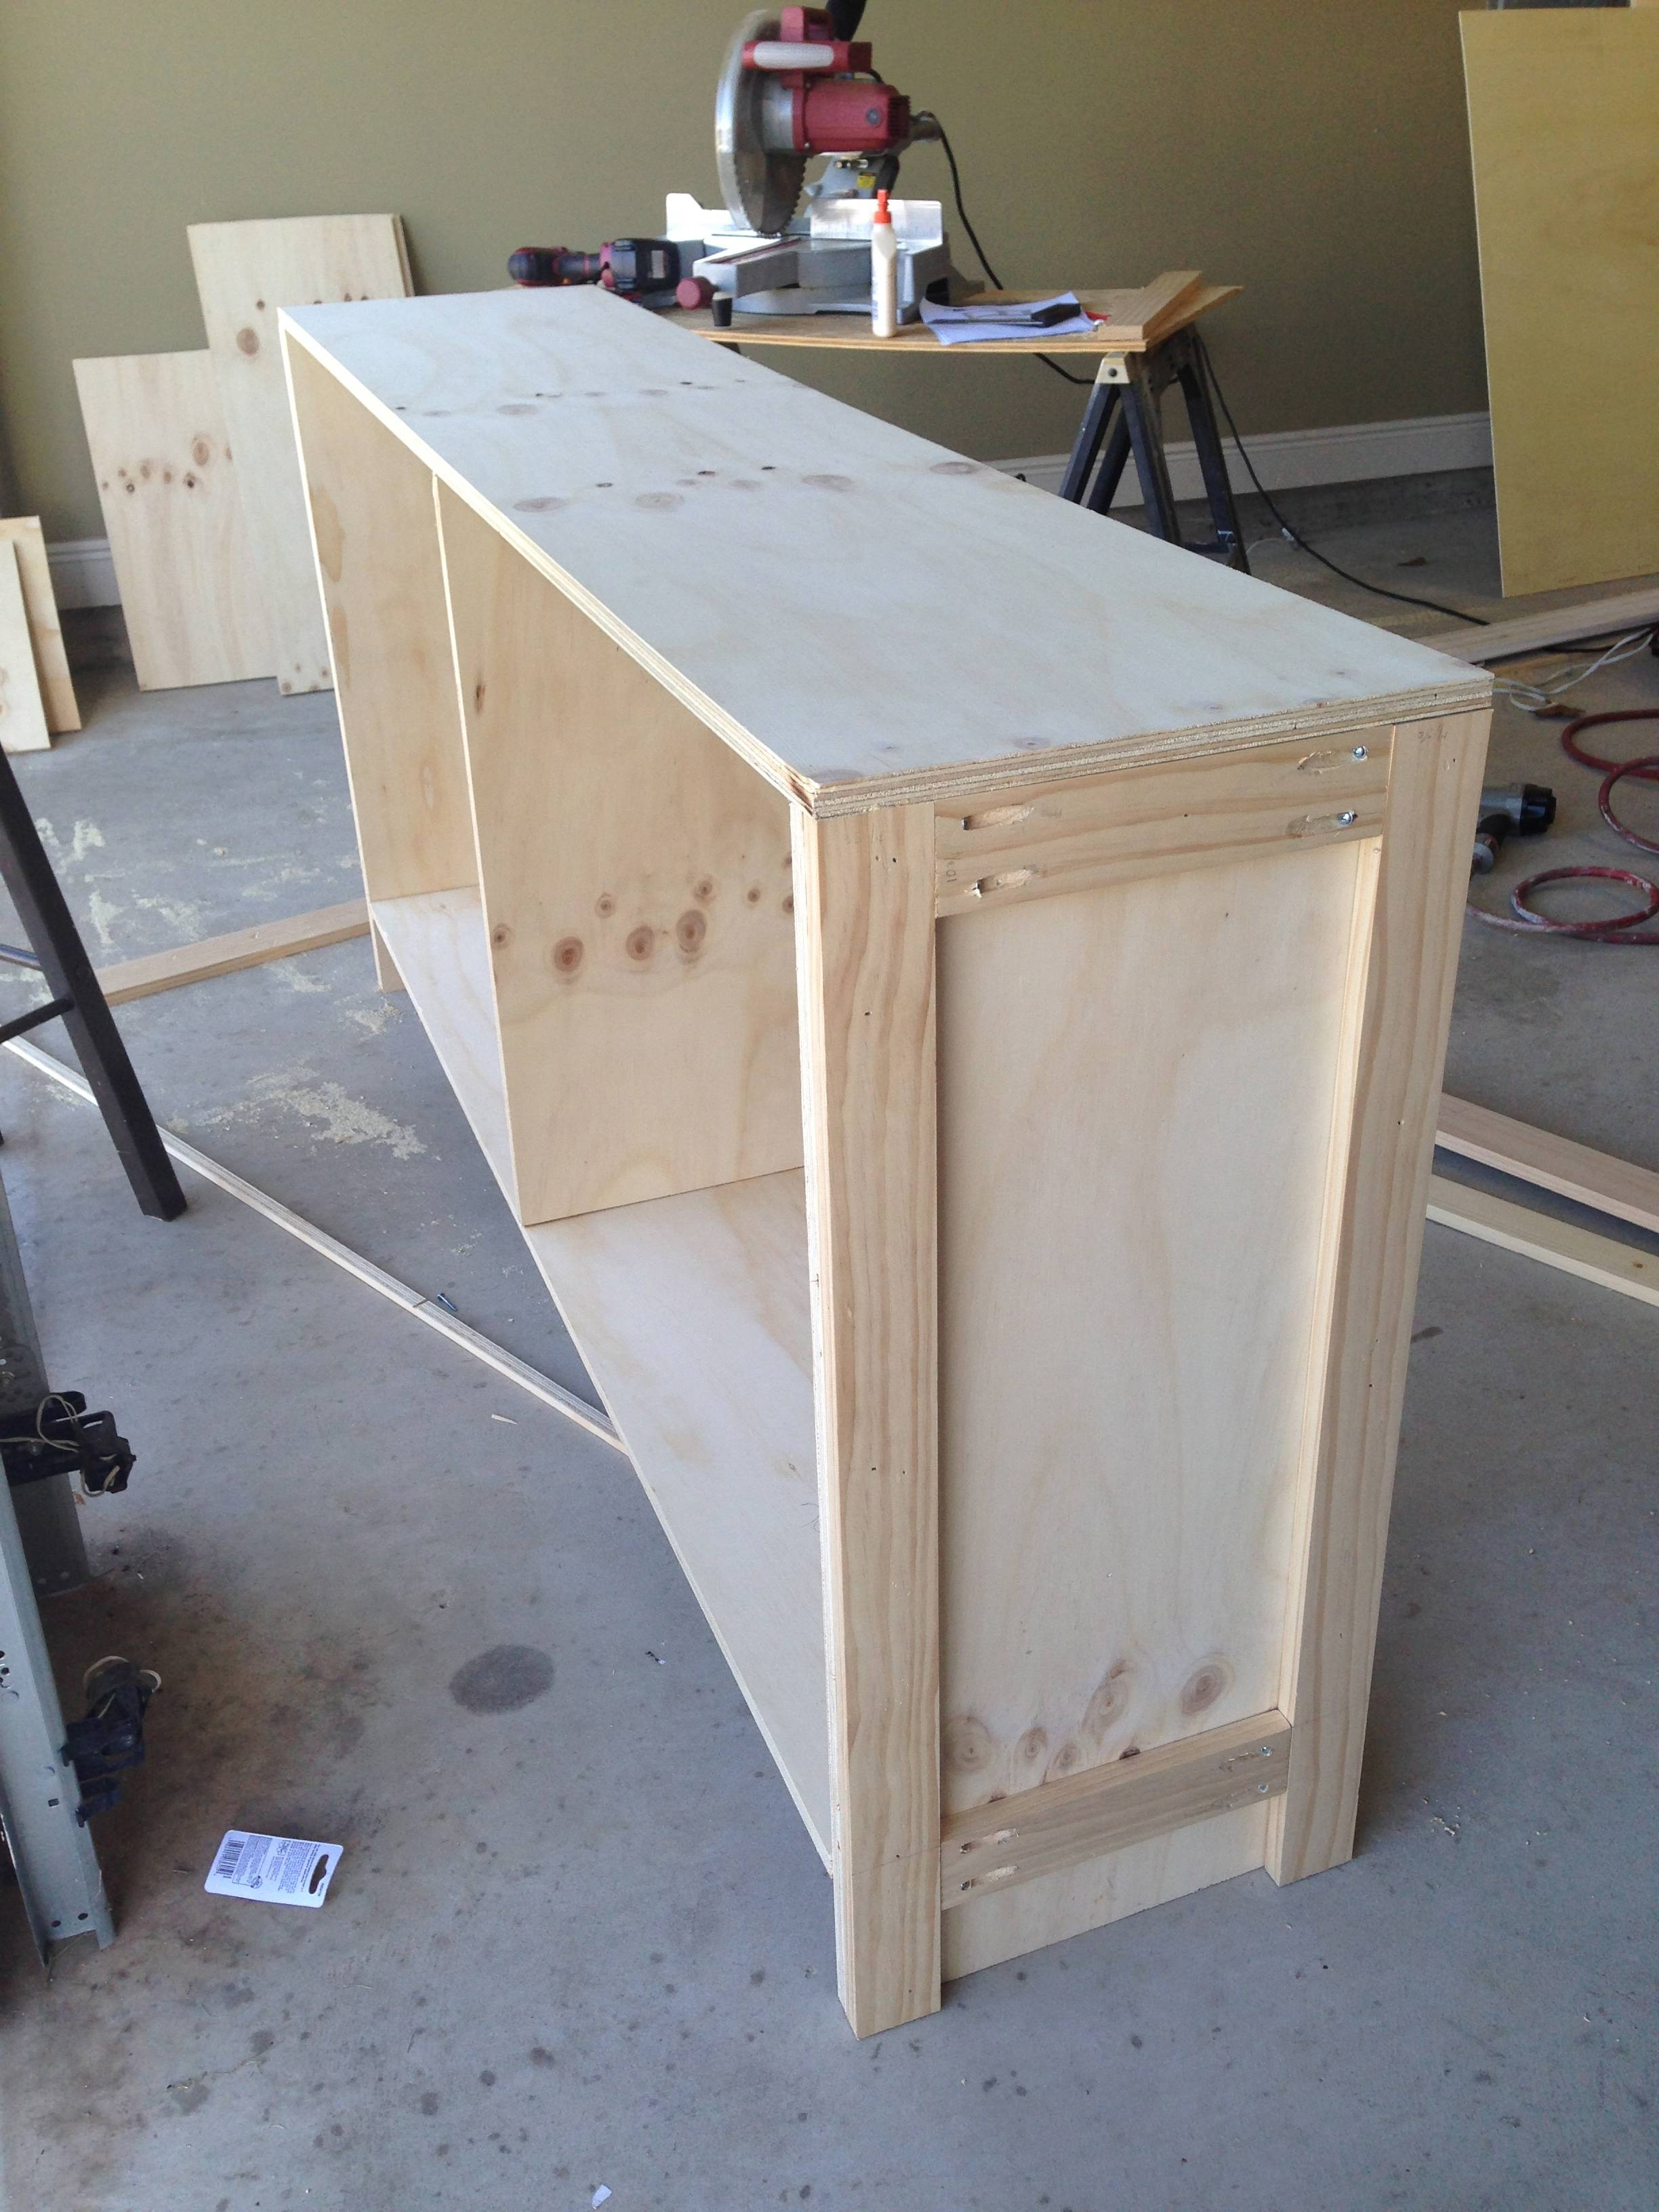 Diy Sideboard | The Sweet Life Pertaining To Current Diy Sideboards (#9 of 15)